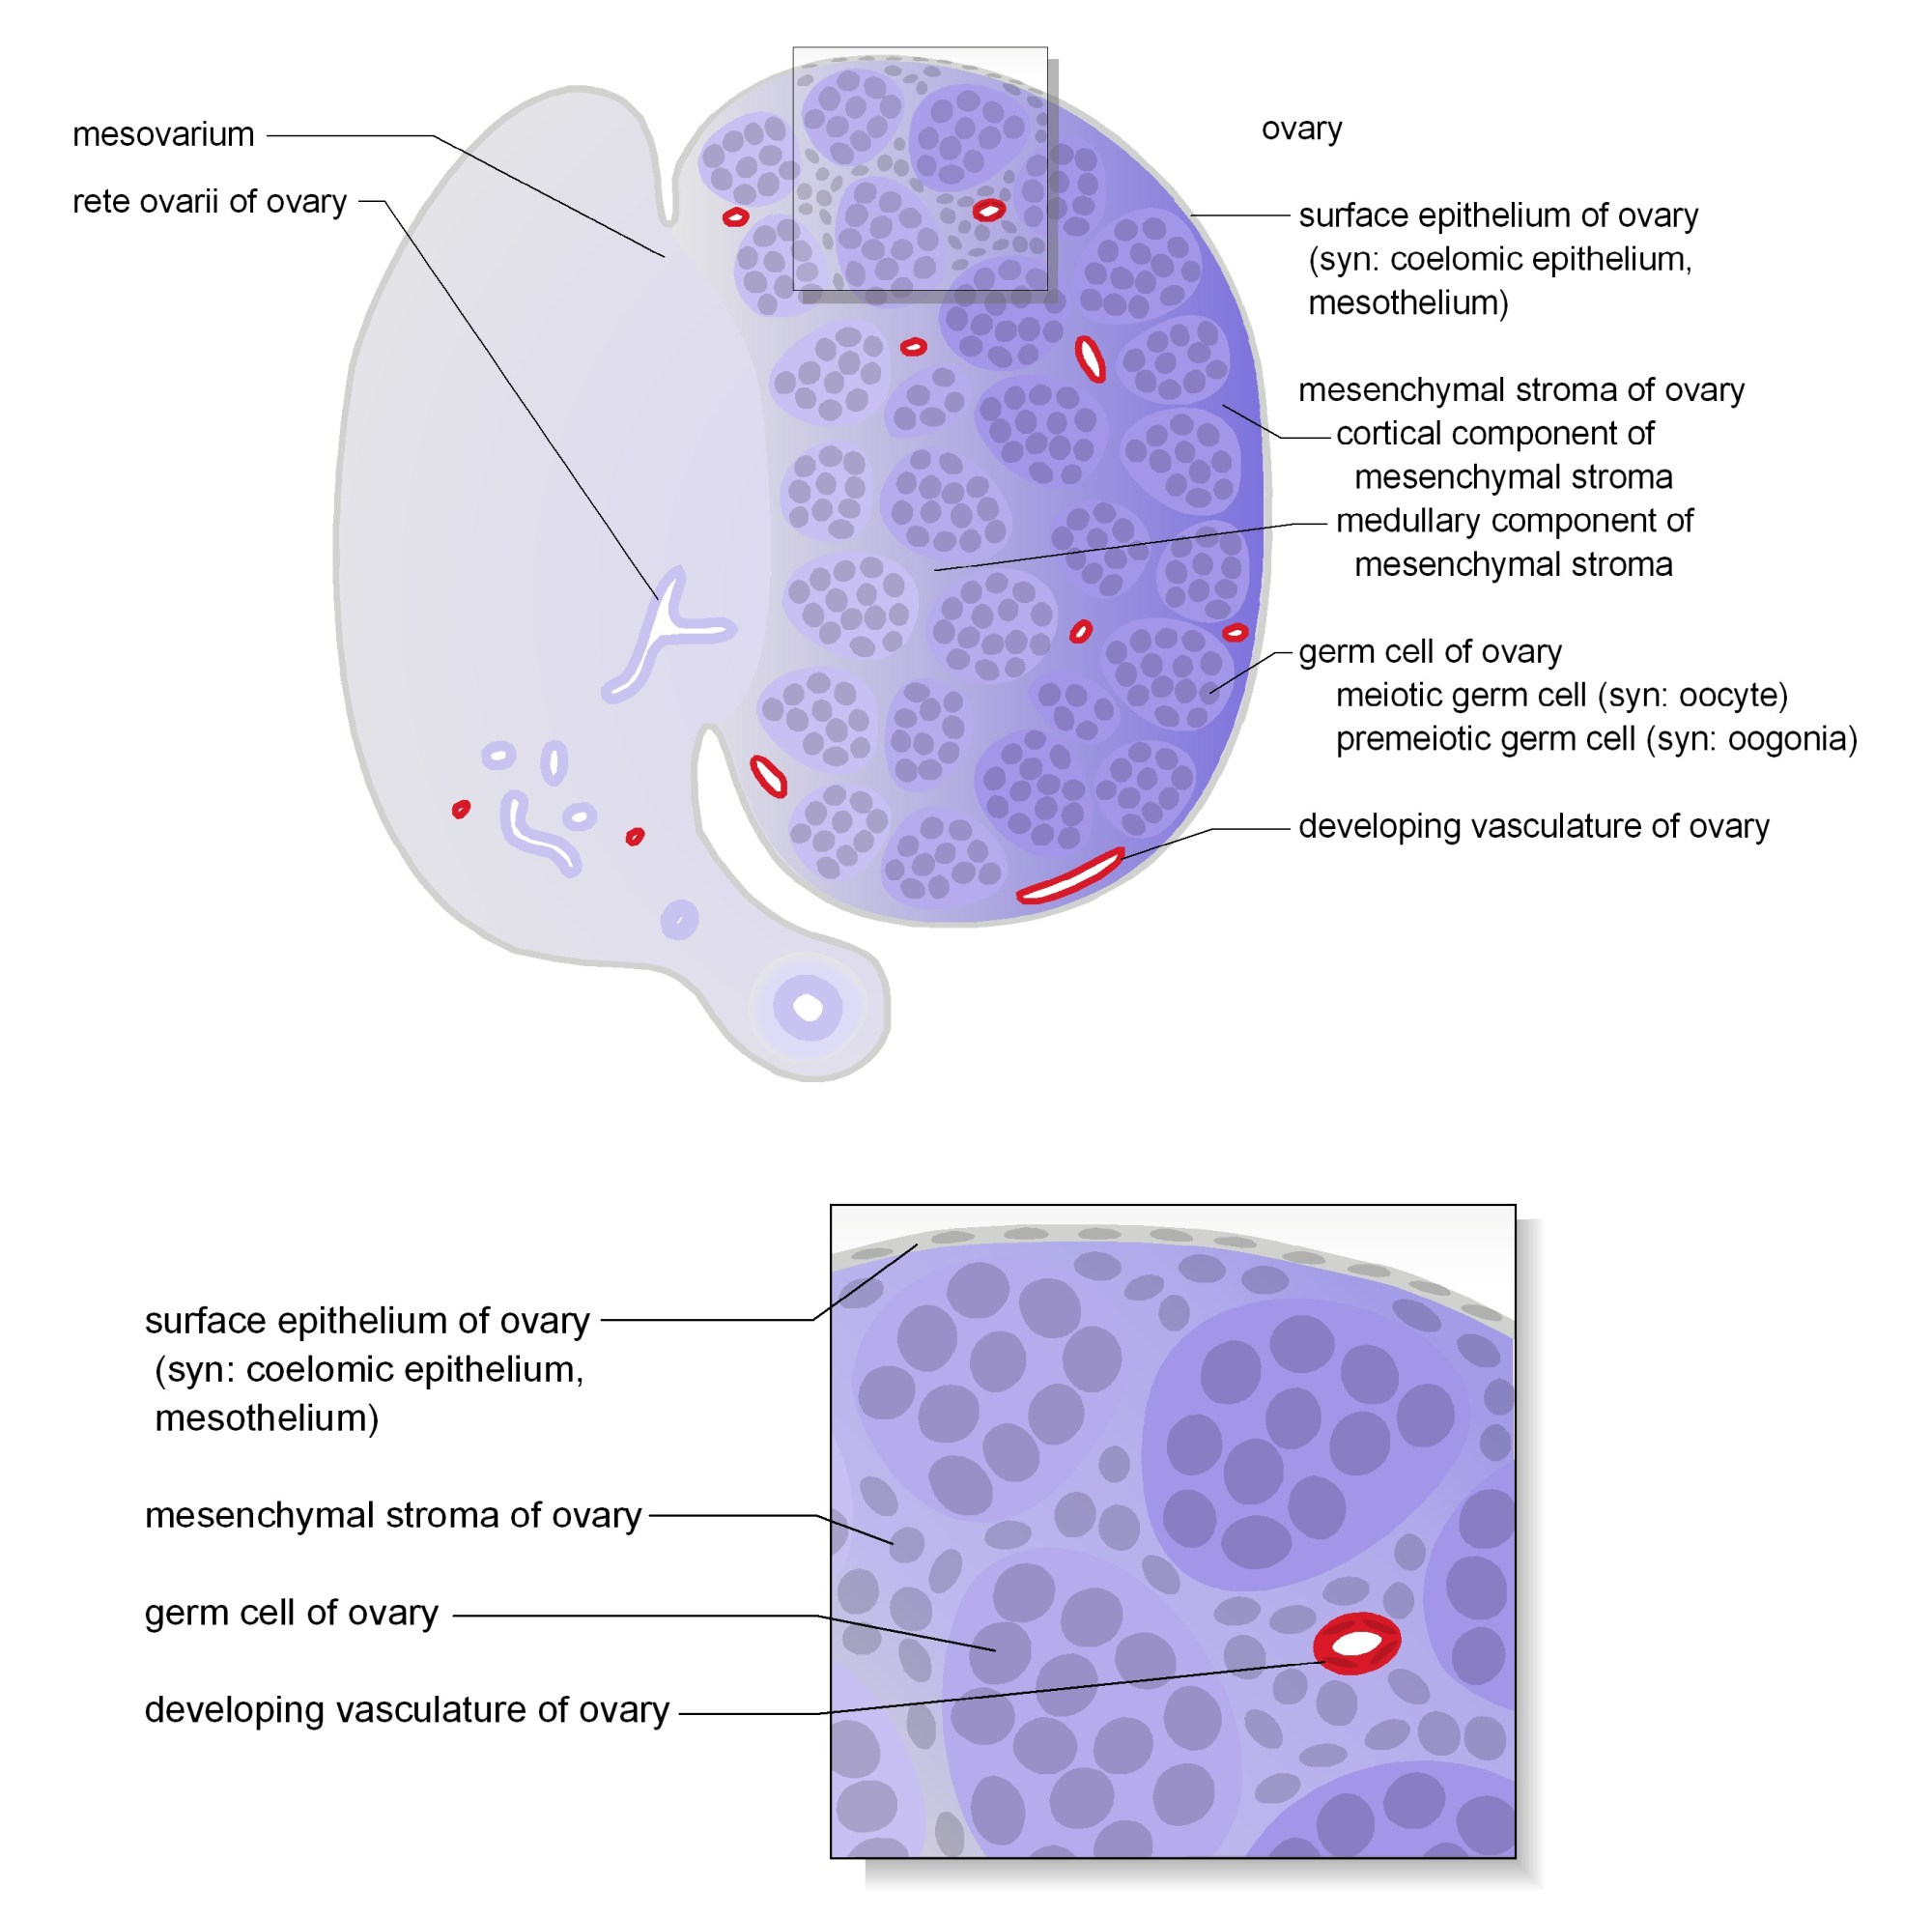 hight resolution of schematic diagrams show representative section views of the mesonephros of female and ovary the tissues and cells that make up the ovary are shown